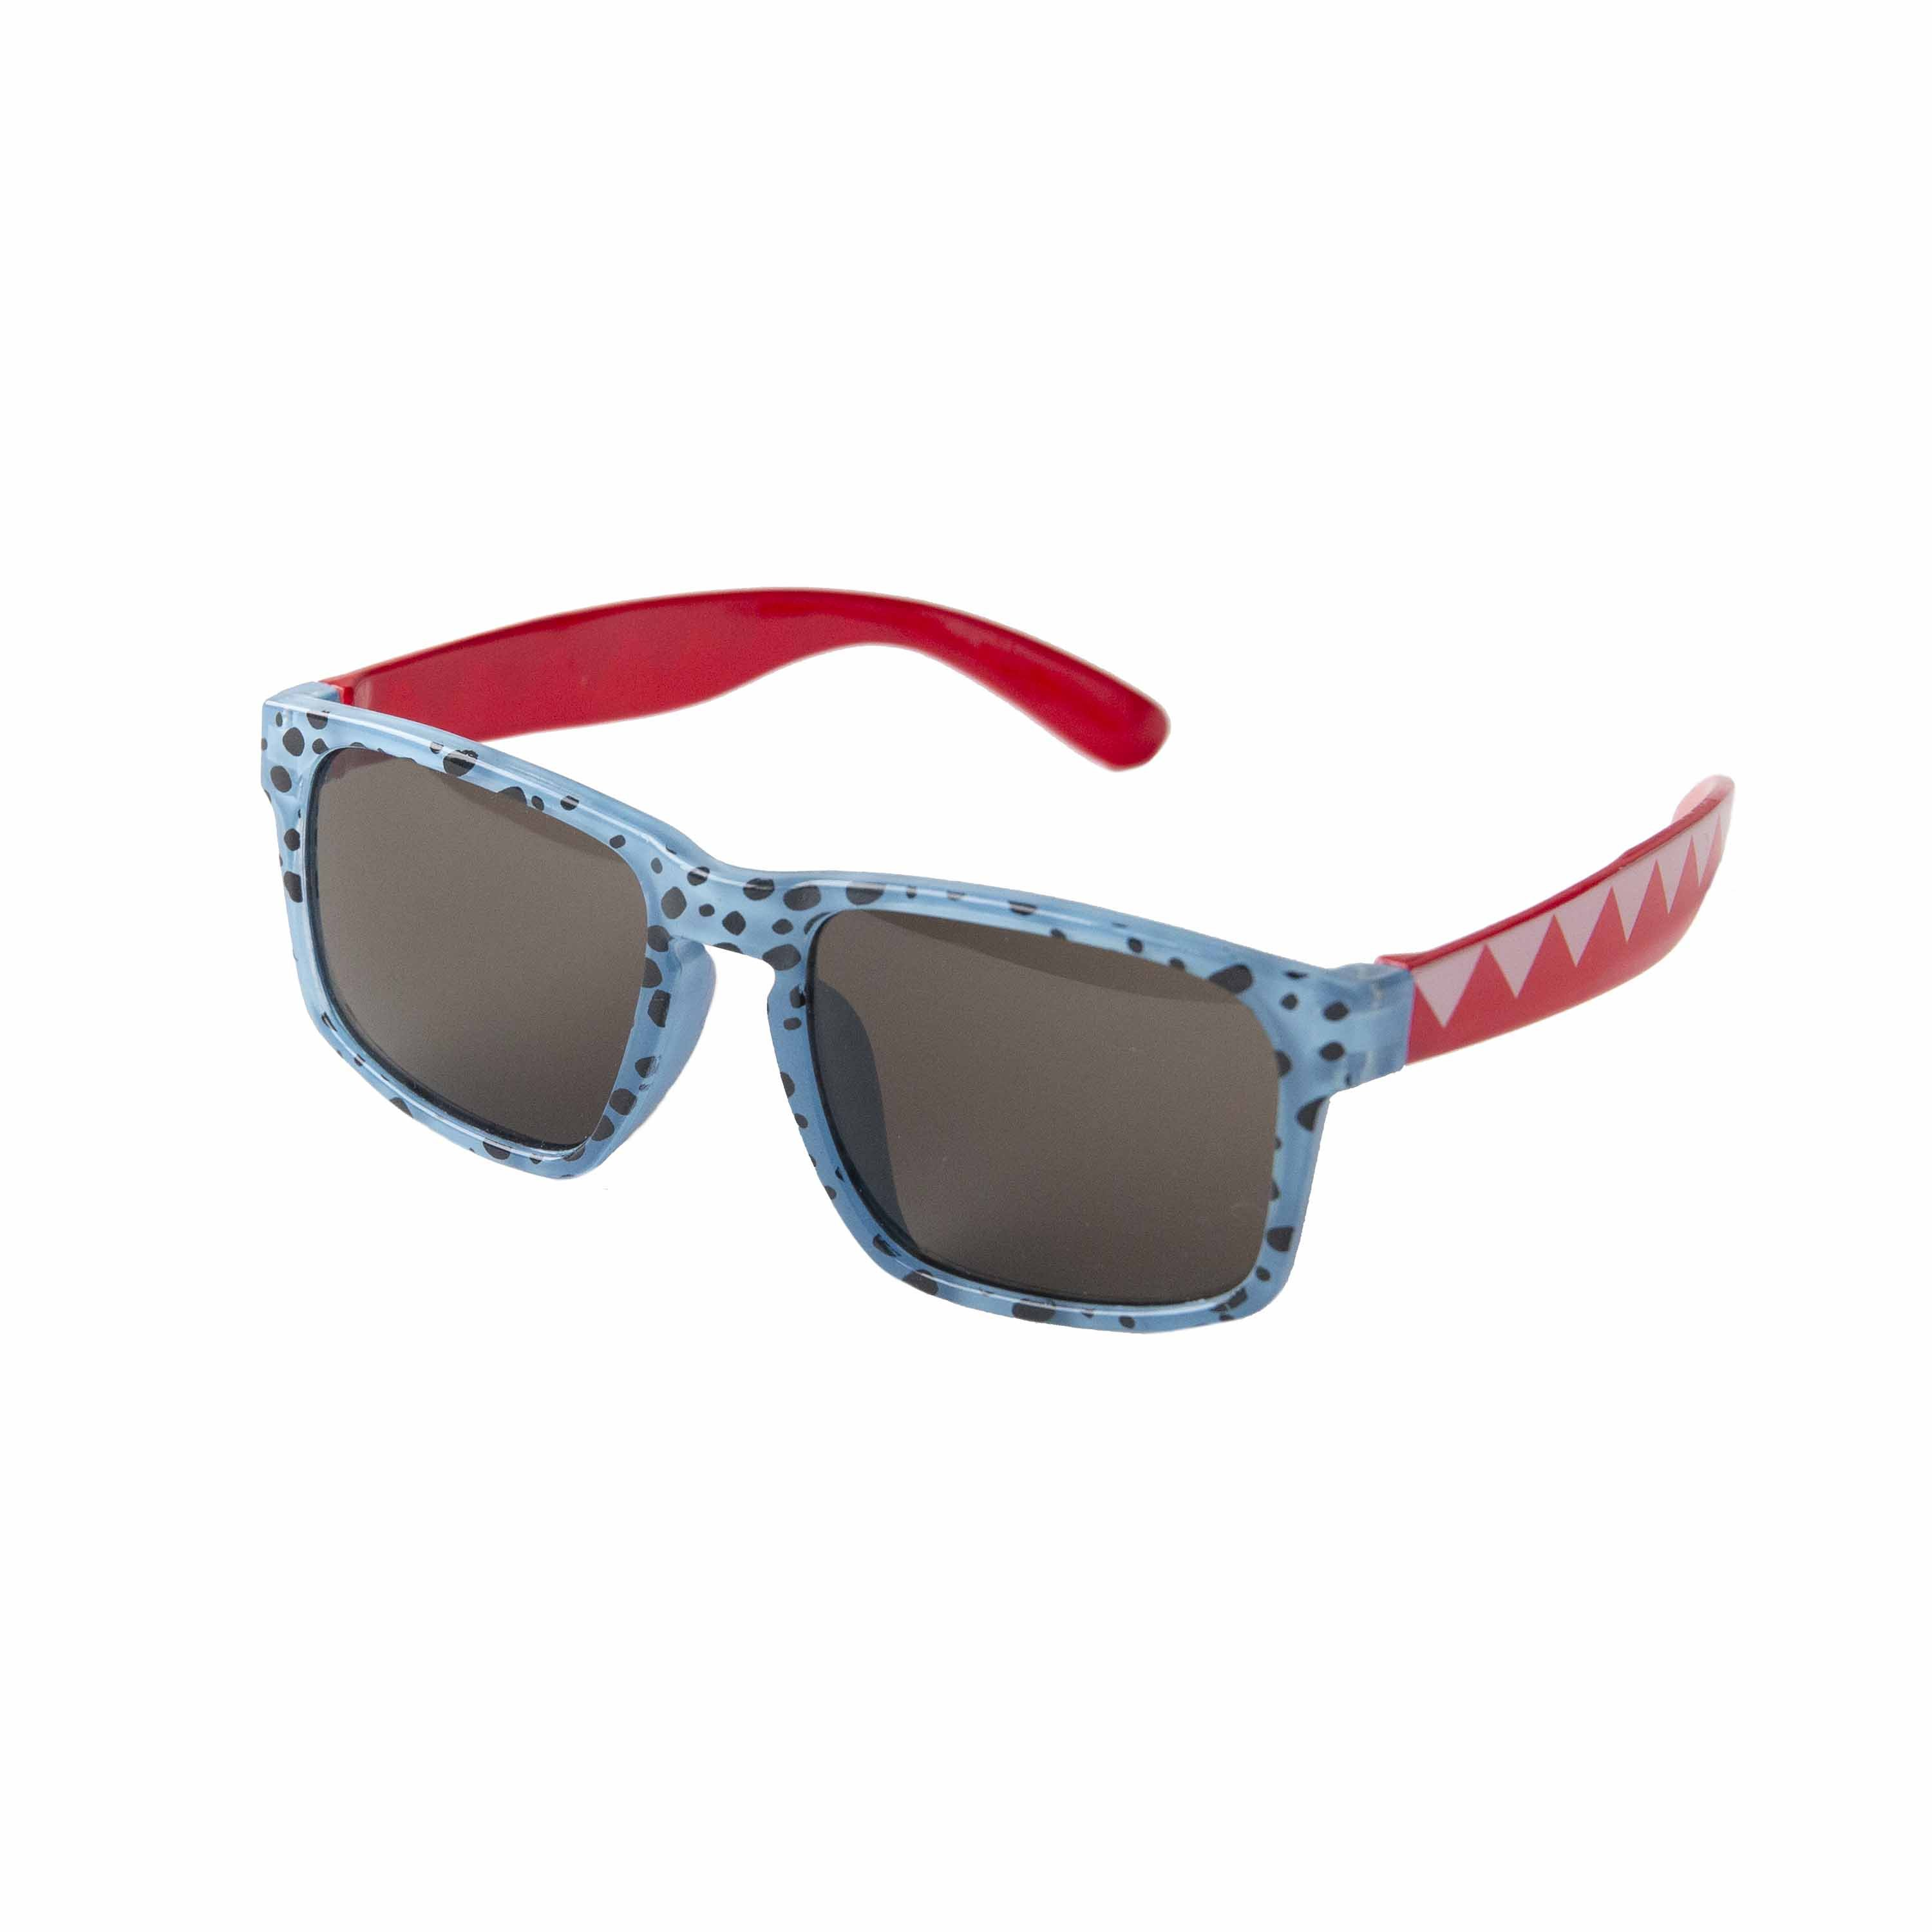 Rockahula Cheetah Sunglasses